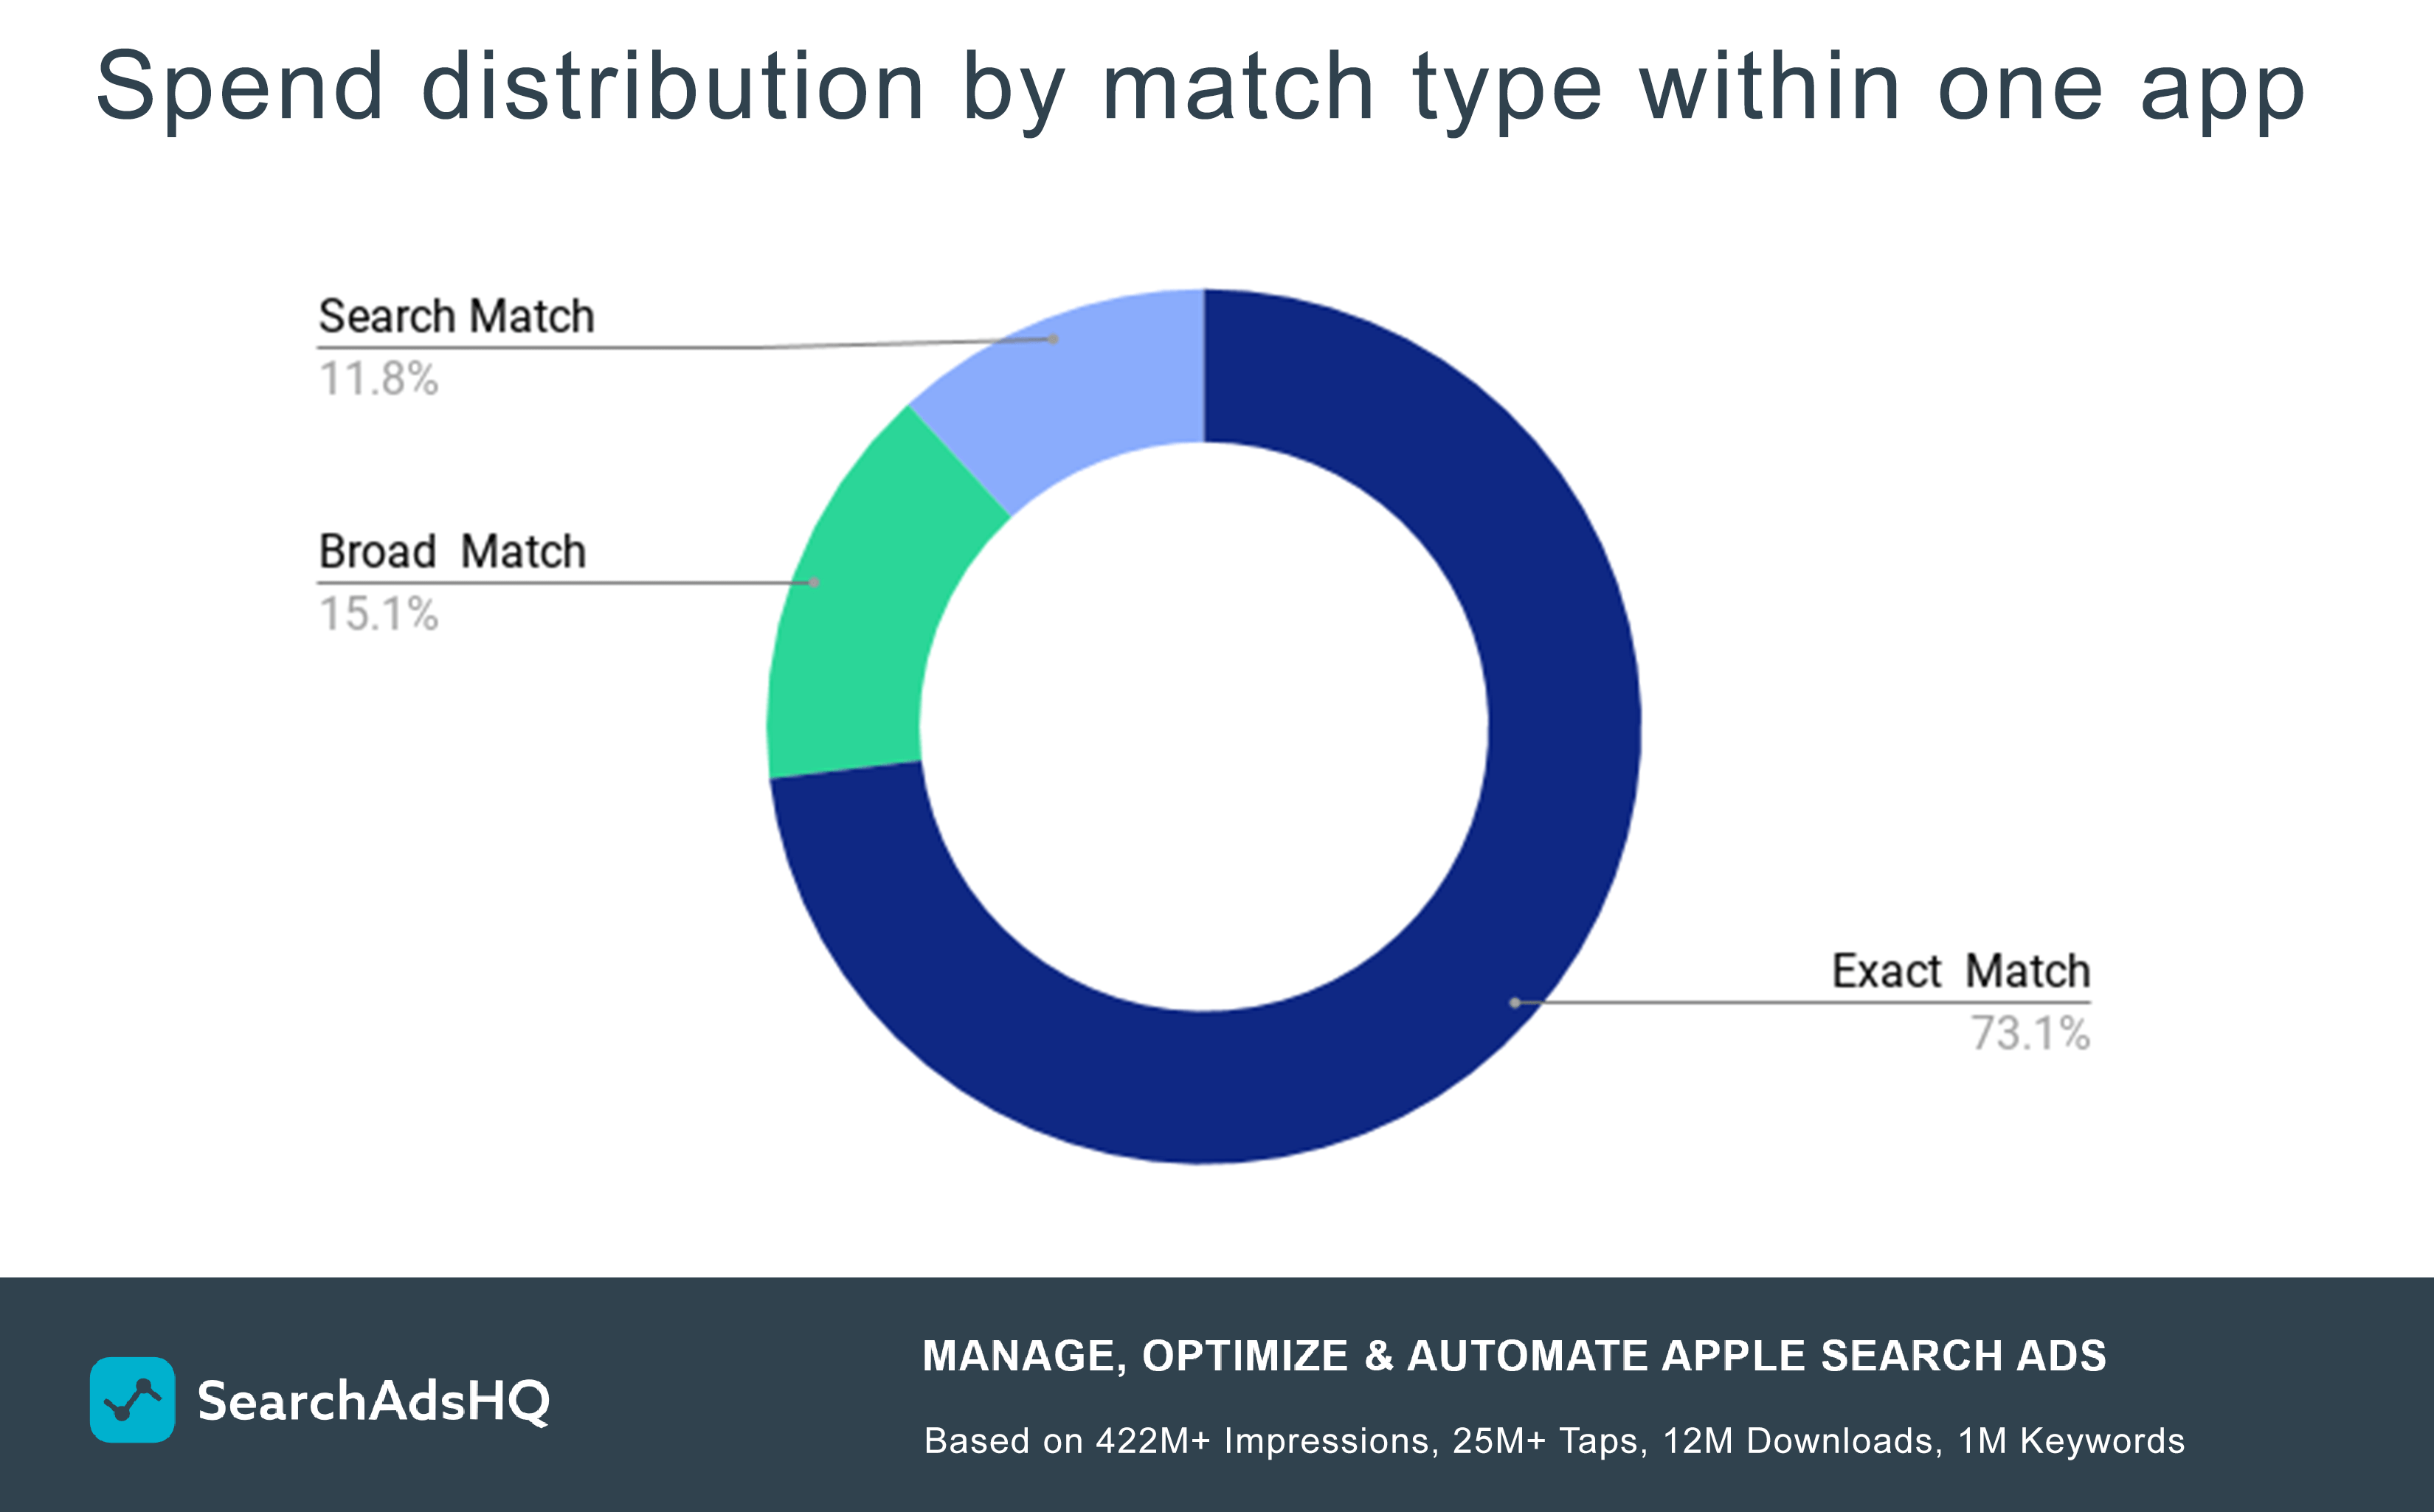 Apple Search Ads spend distribution by match type